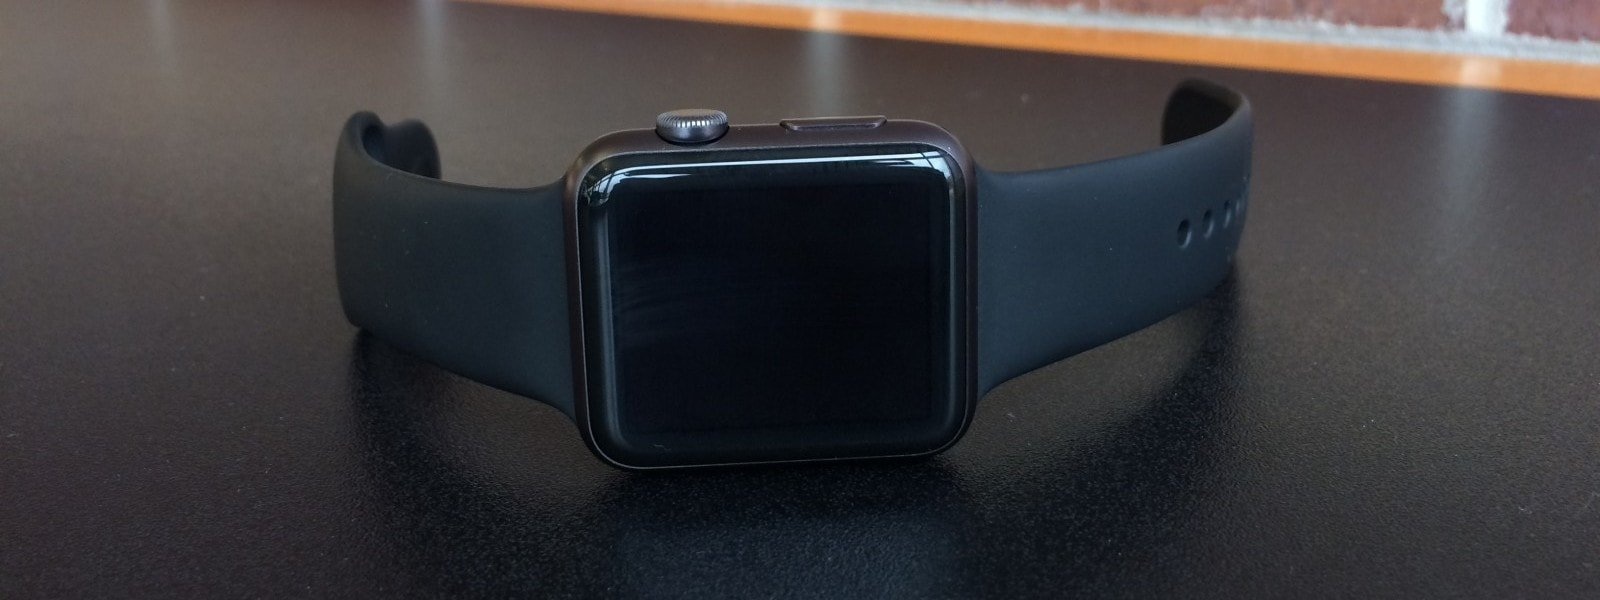 Apple Watch: Productivity Friend or Foe?